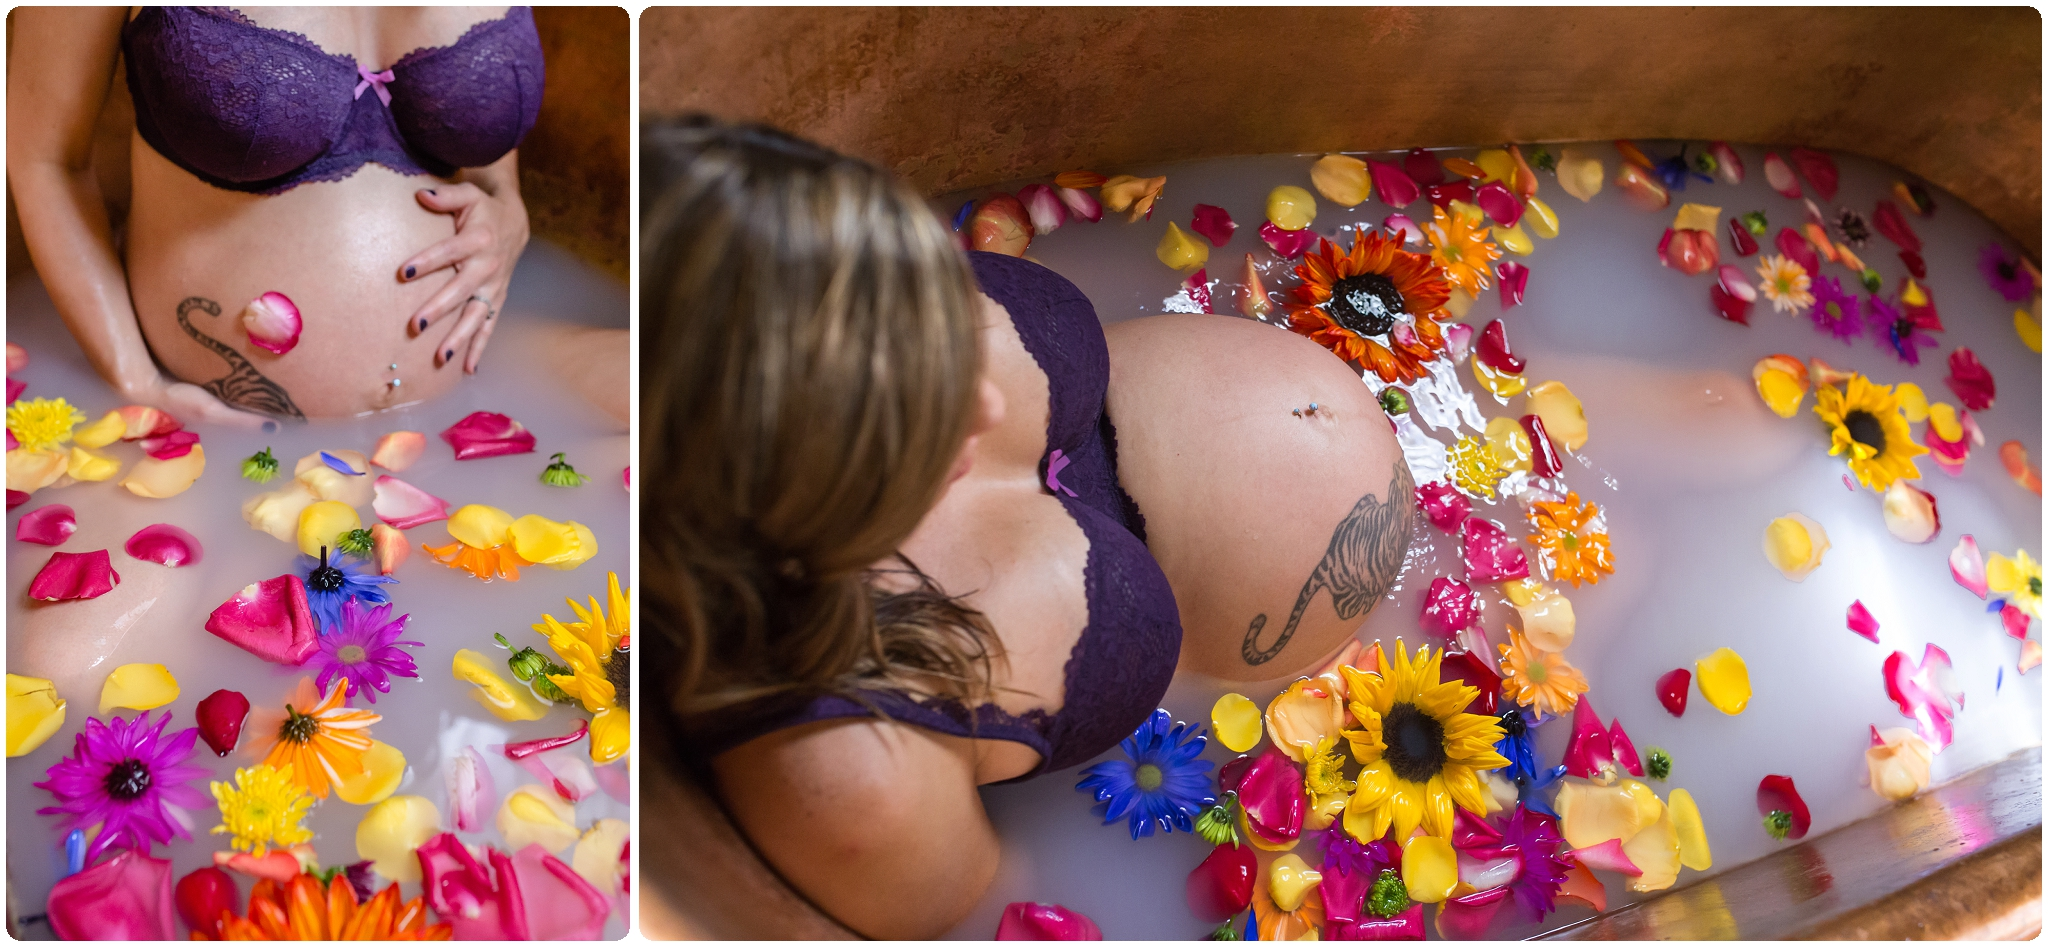 Milk bath maternity session with flowers in a copper tub